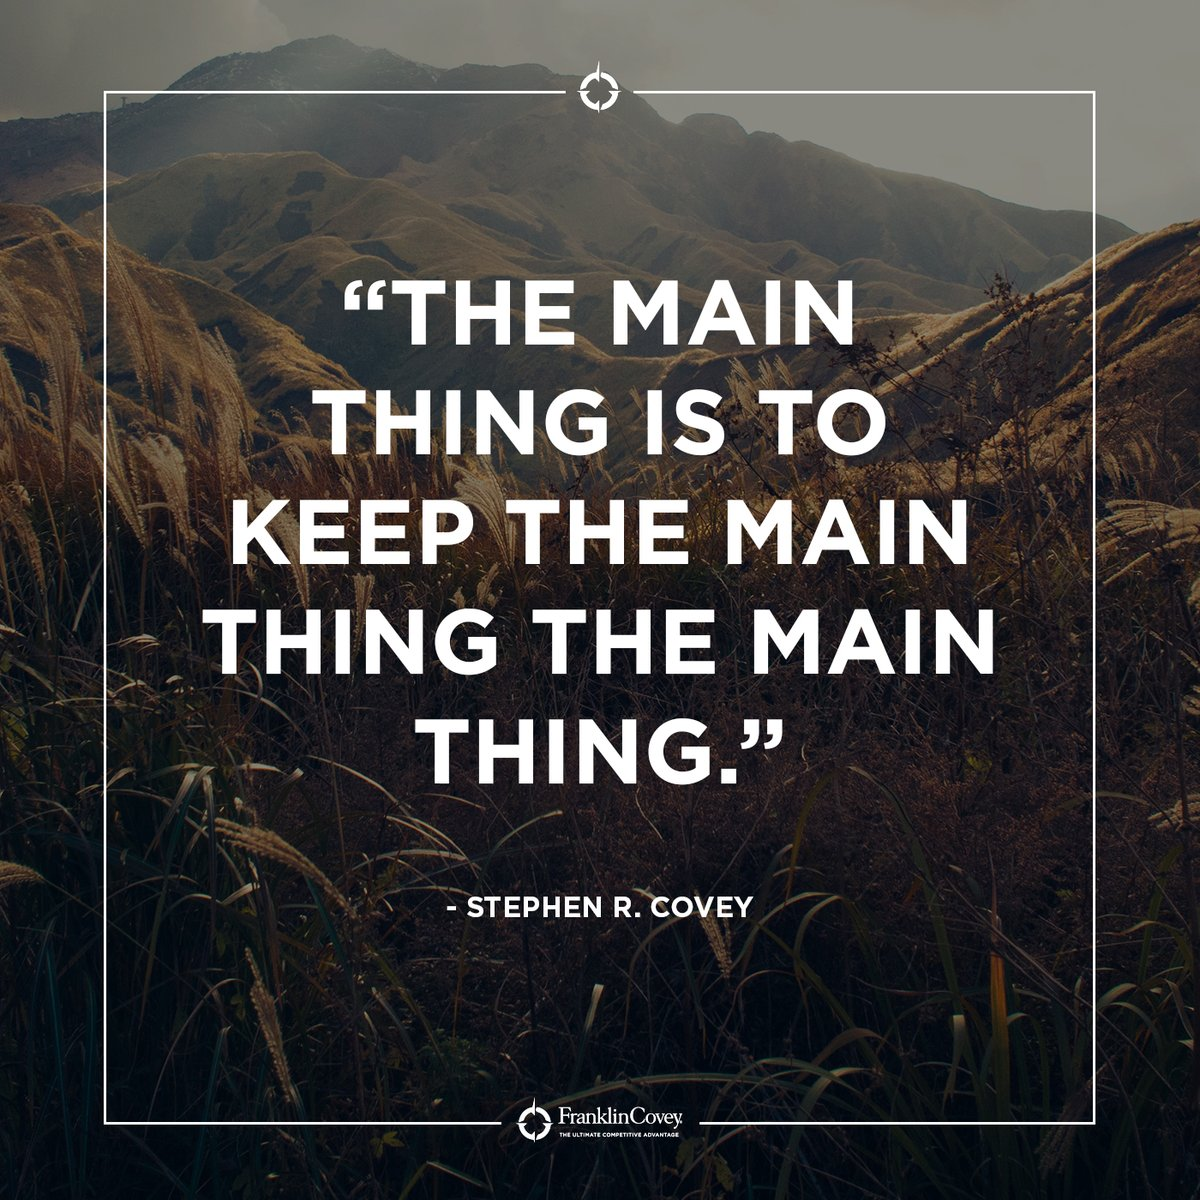 """Replying to @StephenRCovey: """"The main thing is to keep the main thing the main thing."""" - Stephen R. Covey #perspective #priorities #leadership #QOTD #ManagingPartner #CPA For more on The 7 Habits of Highly Effective People, visit here:"""